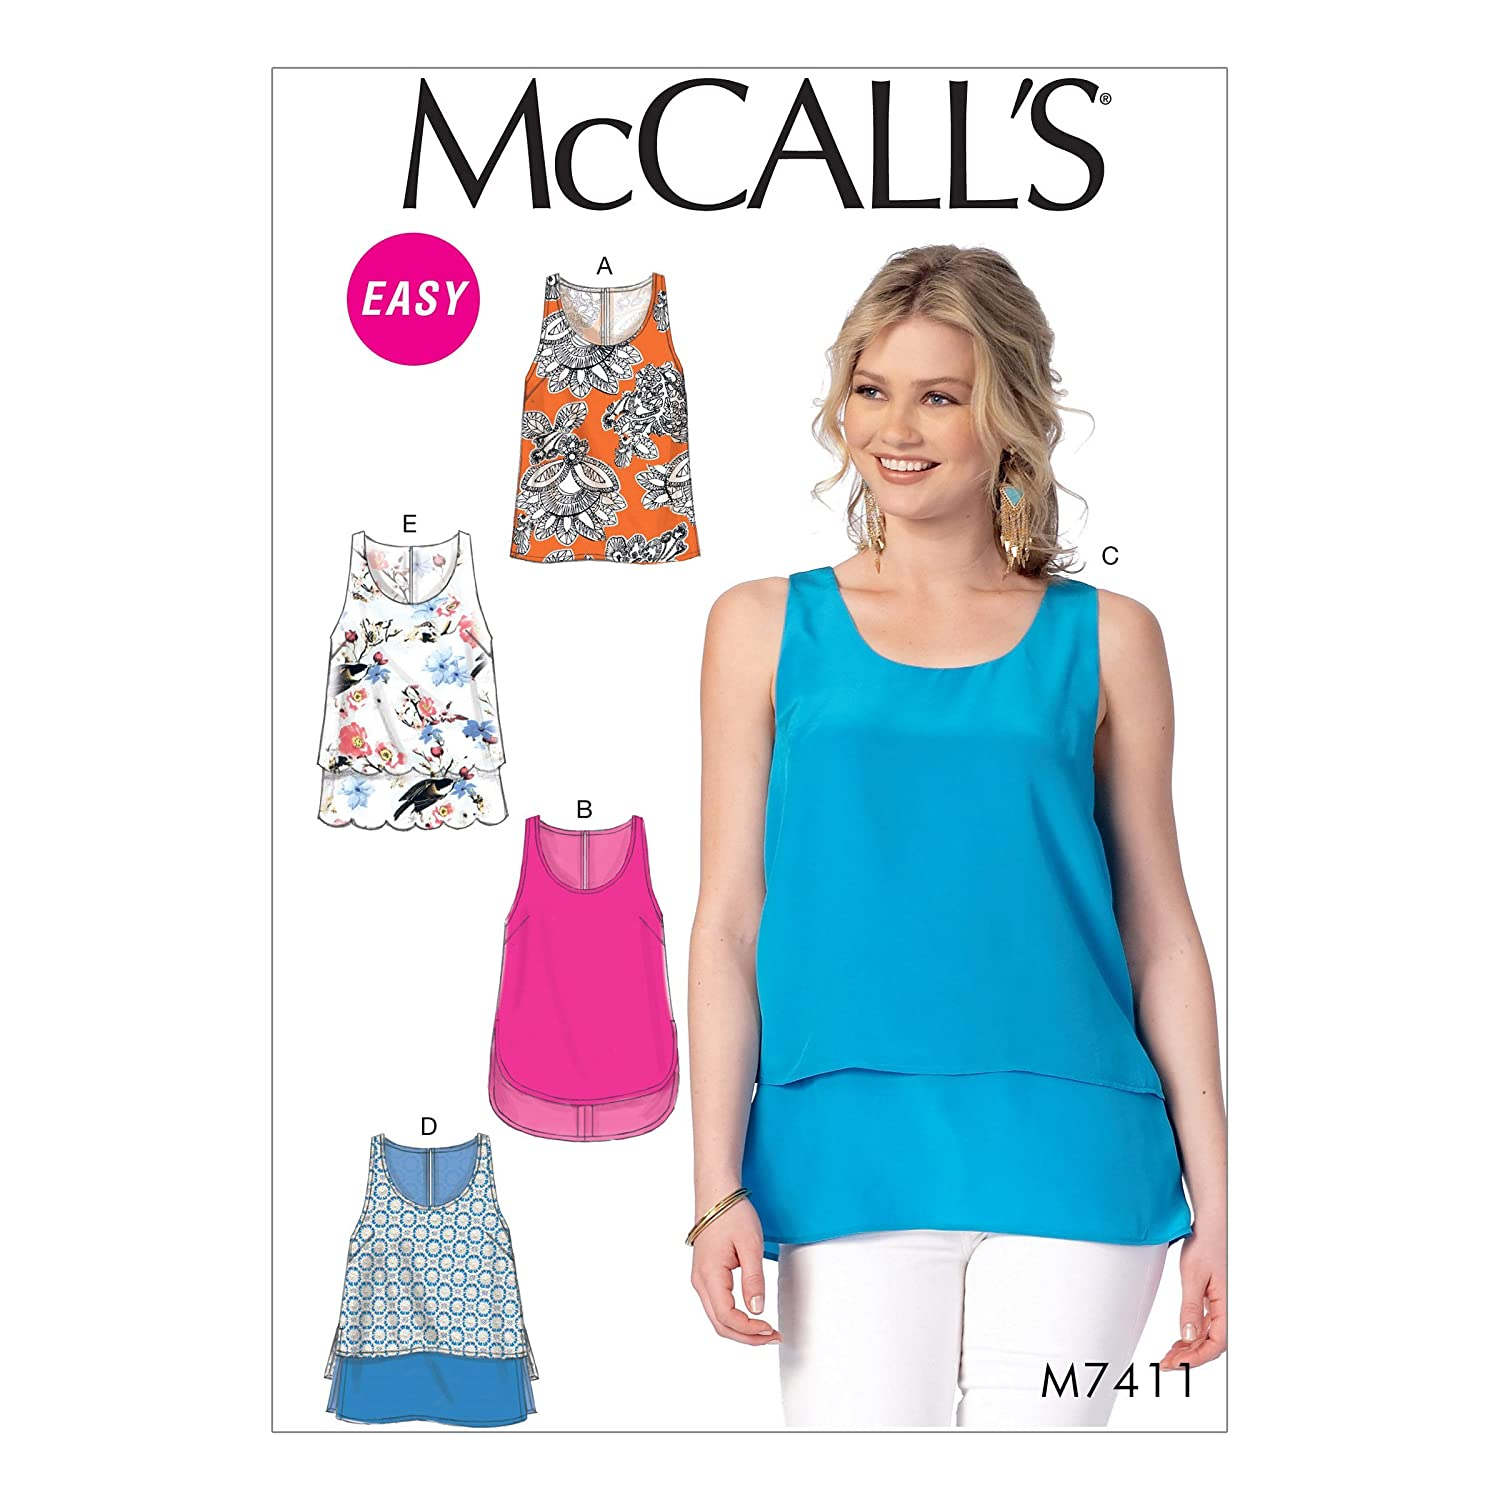 MCCALLS M7411 EASY SEWING PATTERN MISSES TOPS 5 SYTLES (SIZE LRG-XXL) by McCall's   B01FPRWY3I